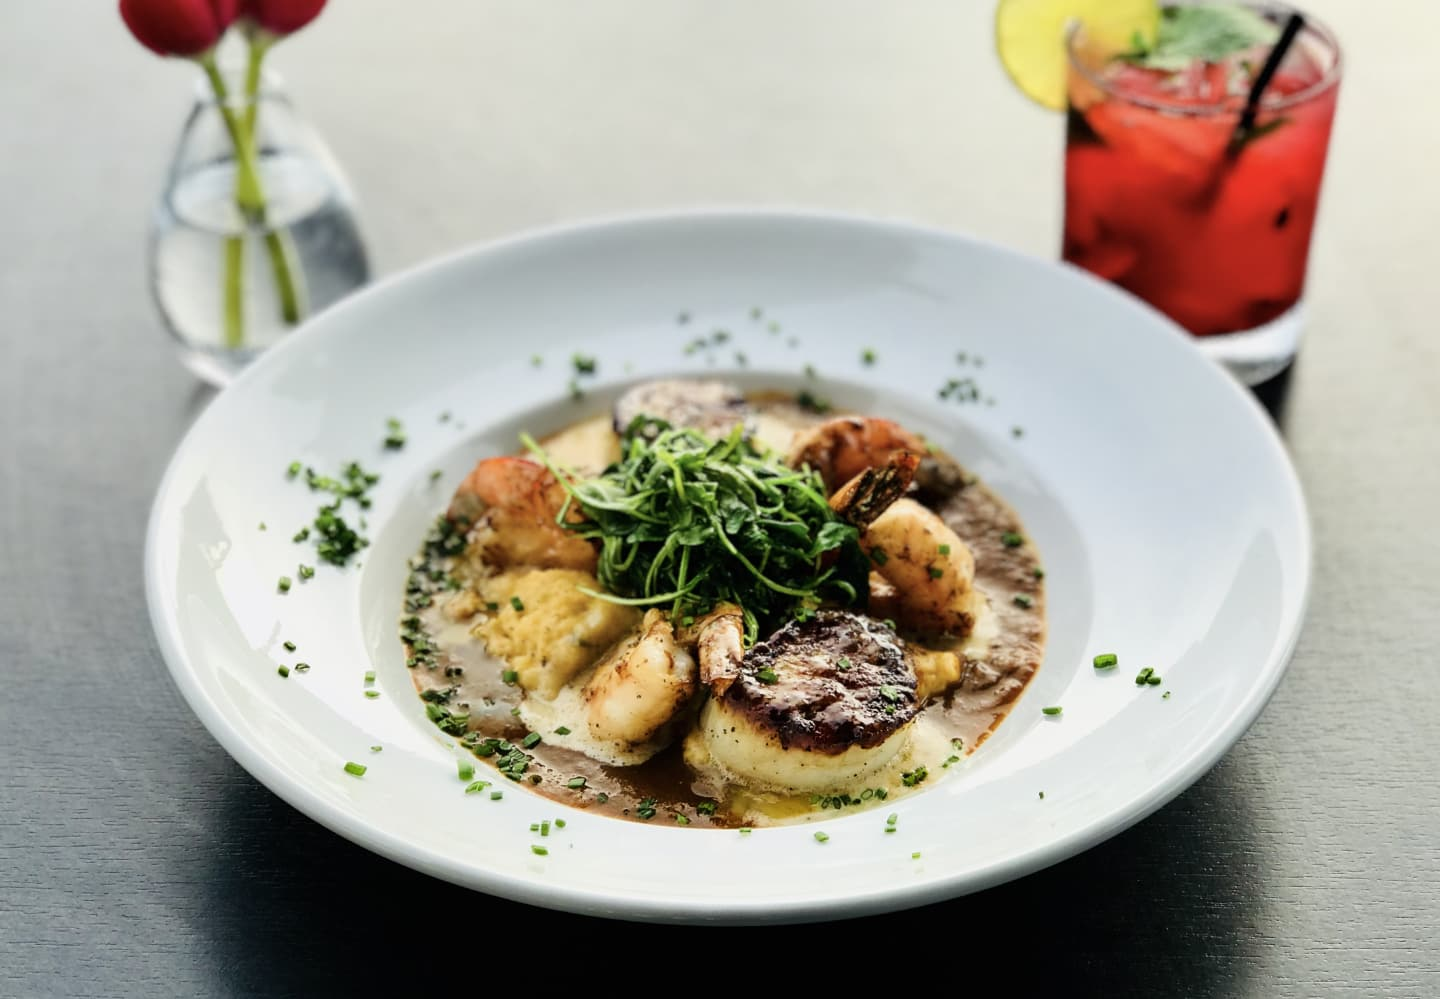 Southern Shrimp & Scallop w/ Cheddar Jalapeno Grits,Sauteed Arugula & Lobster Gumbo Sauce